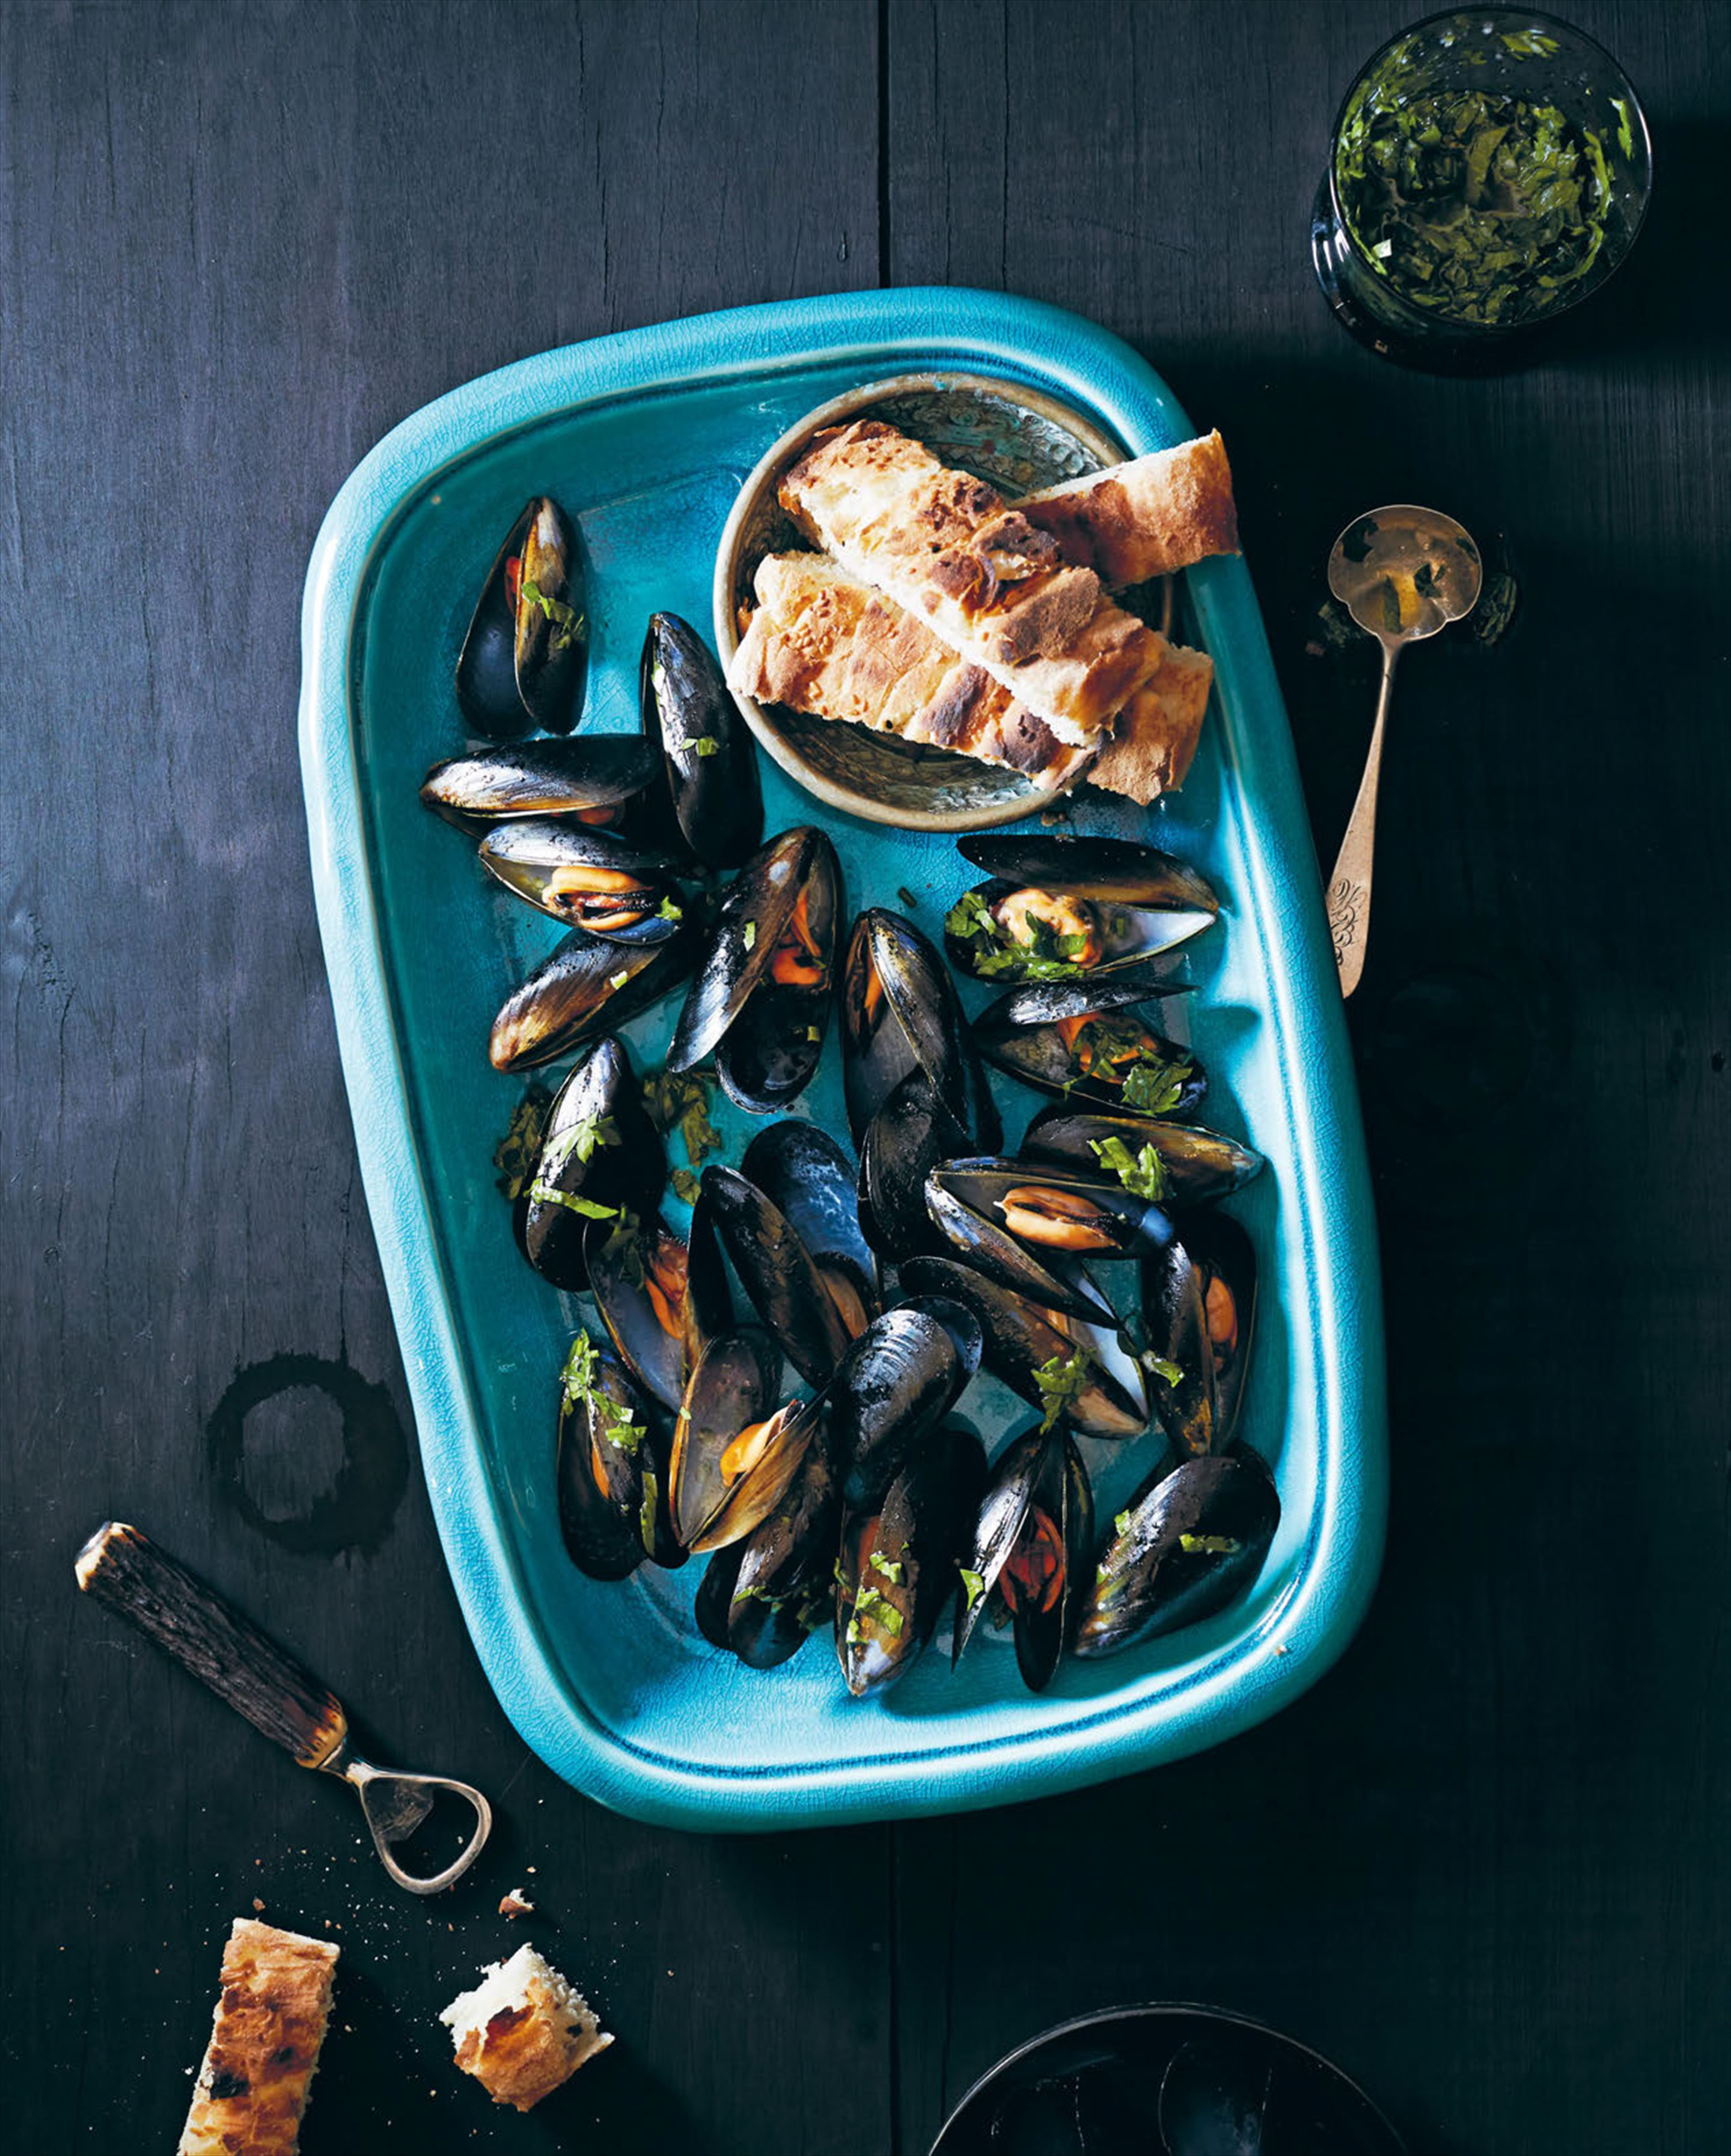 Barbecued mussels